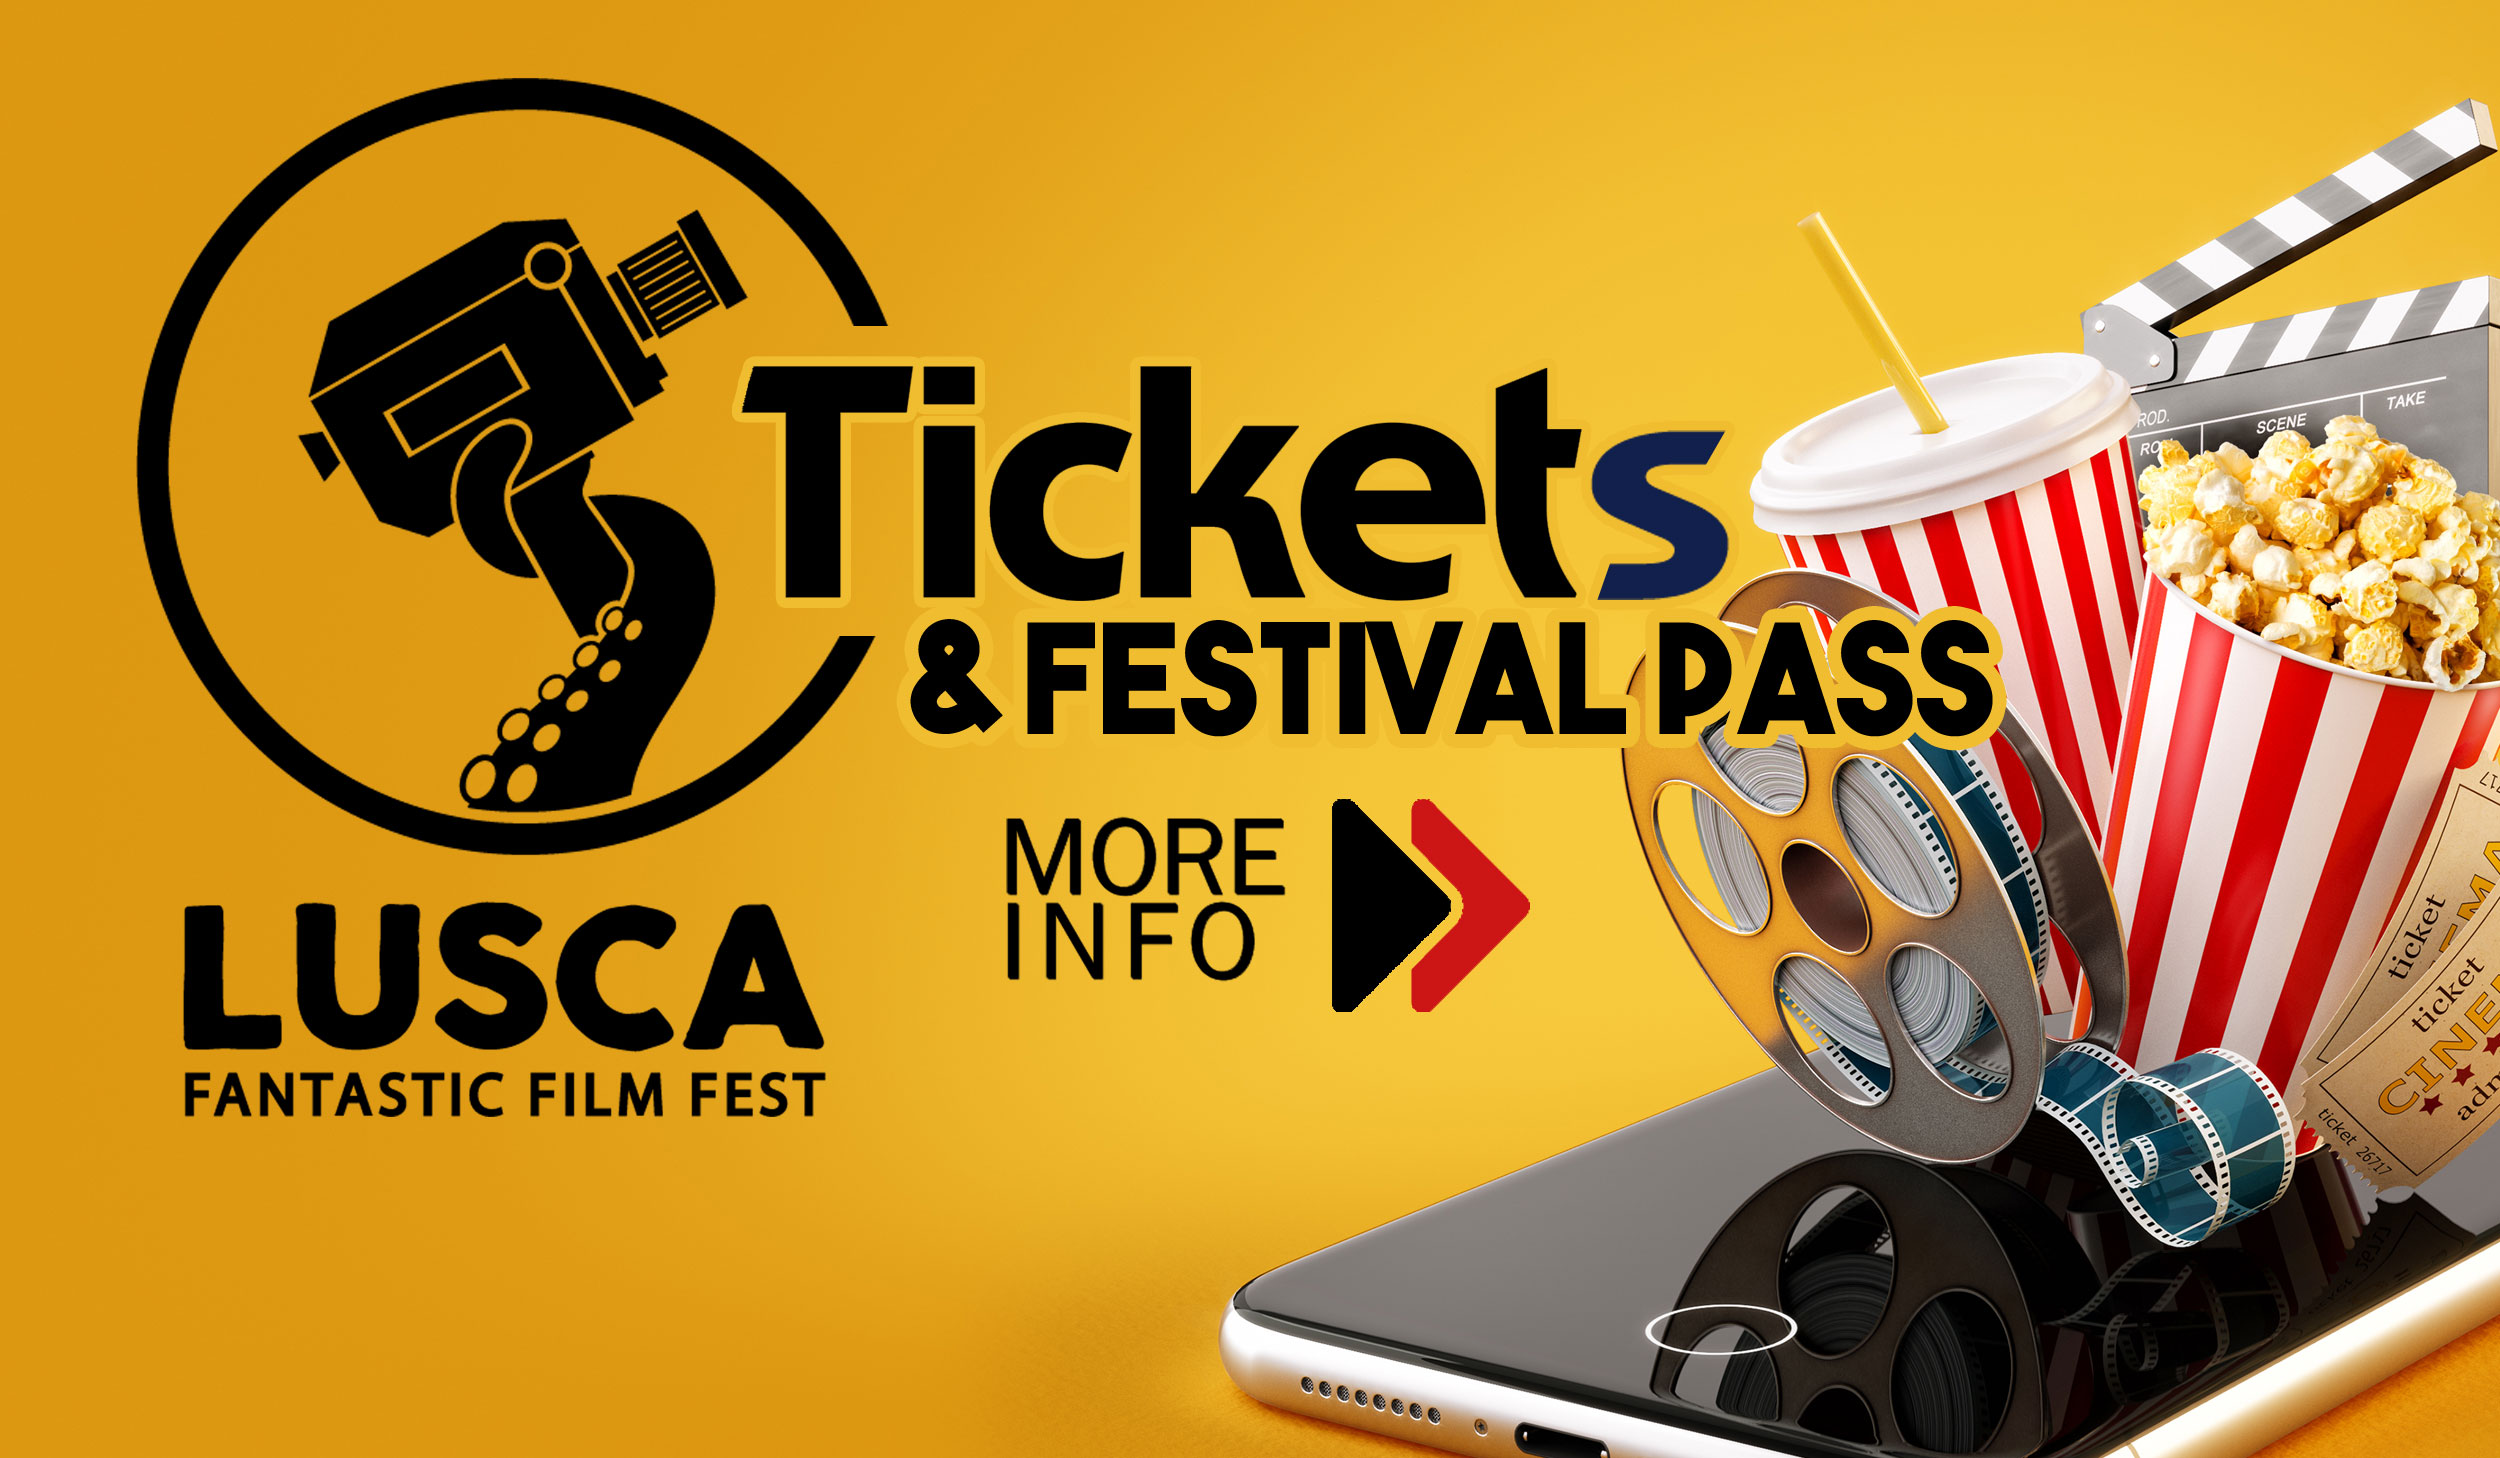 Lusca Tickets & Passes